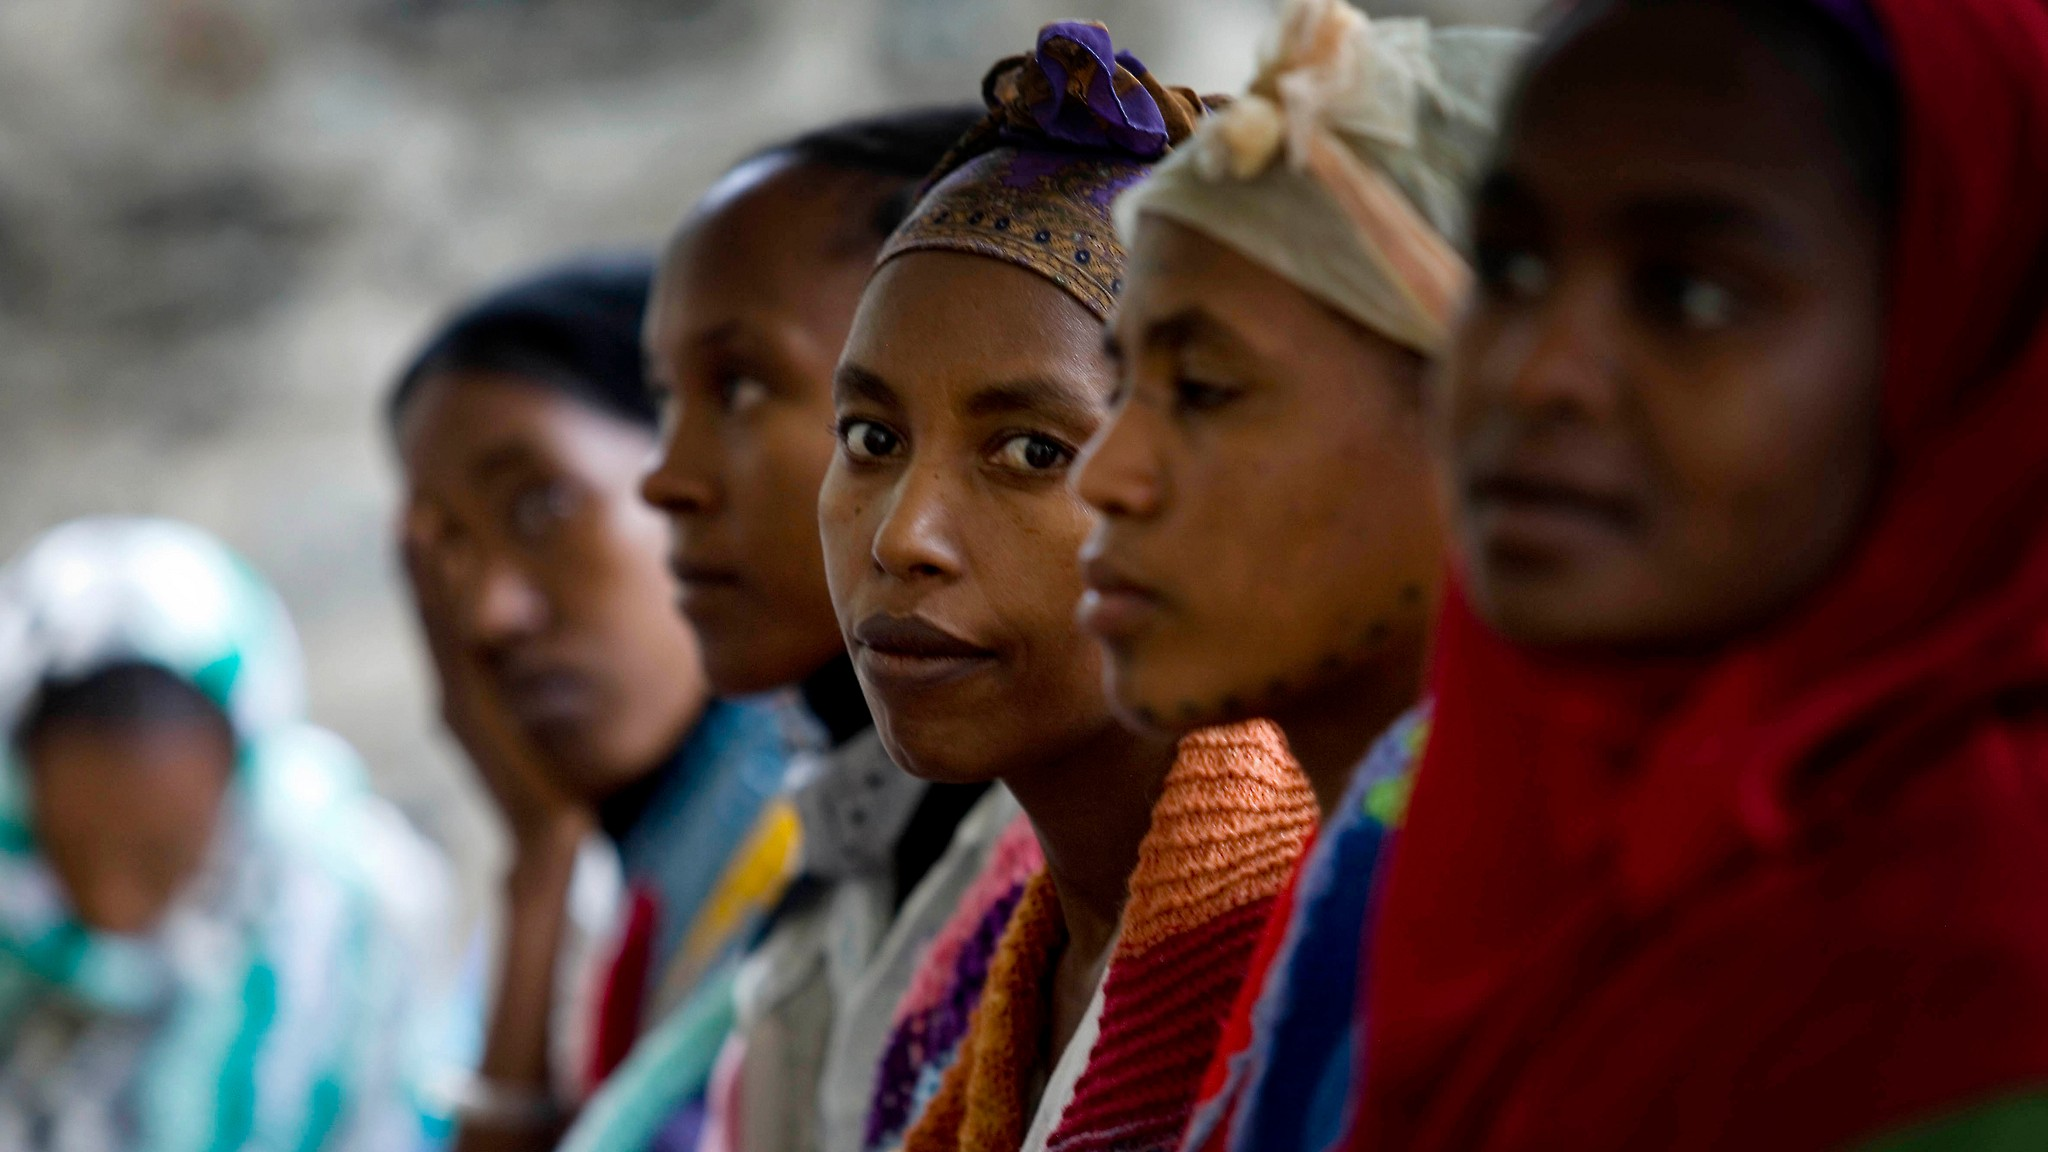 Teen's Death After Kidnapping and Gang Rape Causes Scrutiny of Ethiopia's Anti-NGO Law